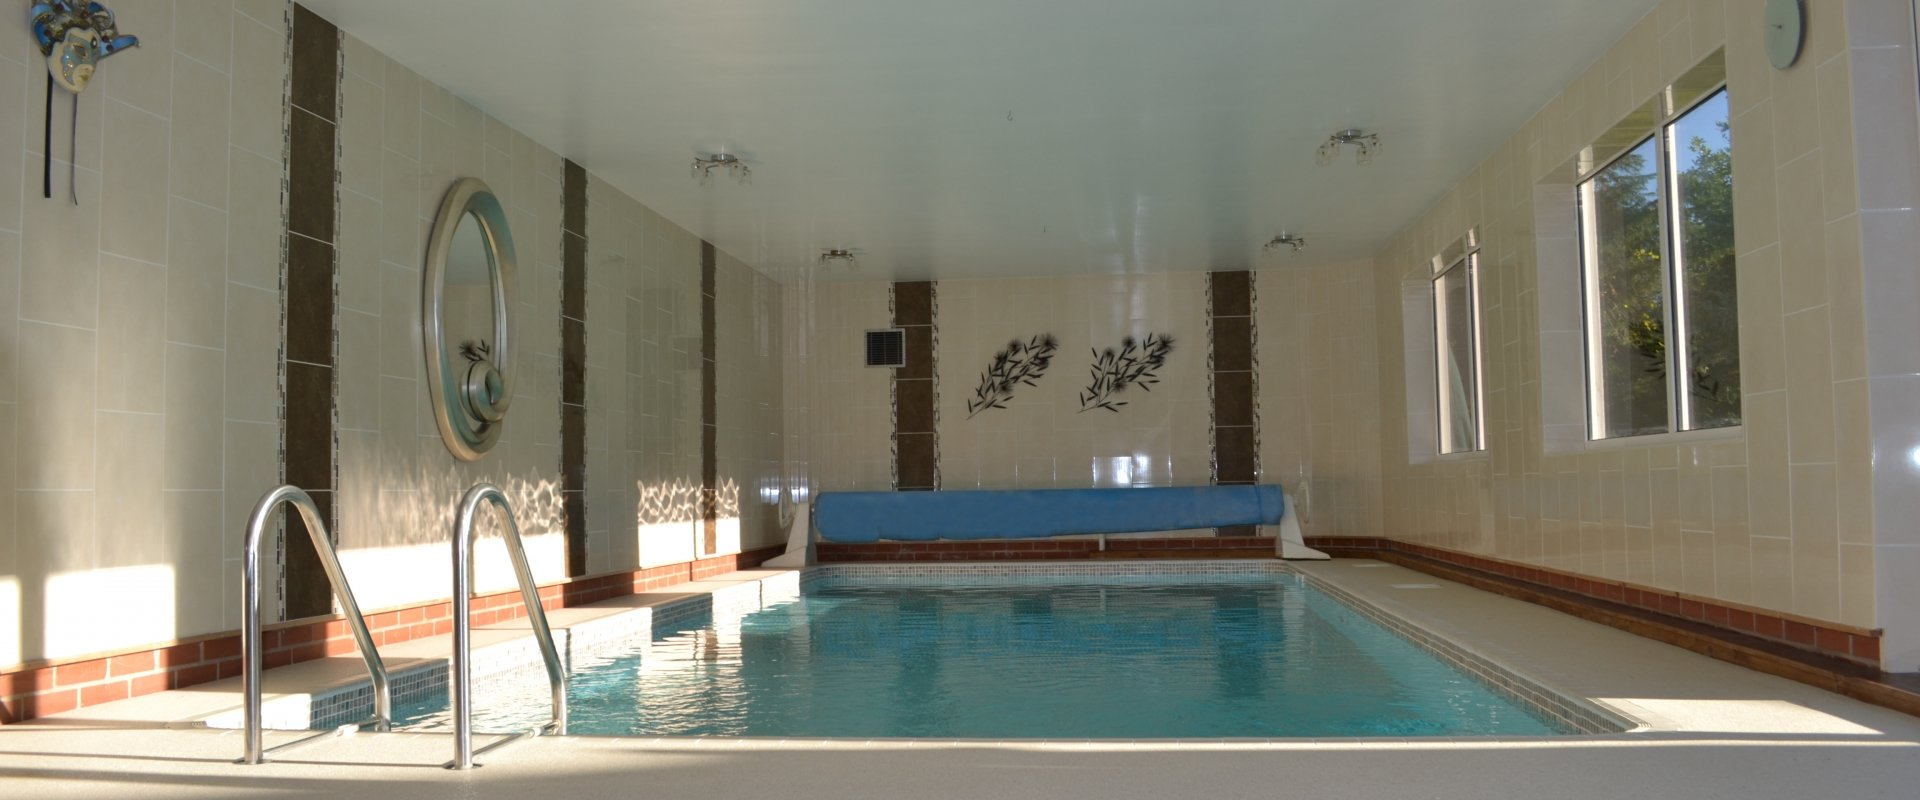 Indoor Swimming Pool Surround Sureset Permeable Paving